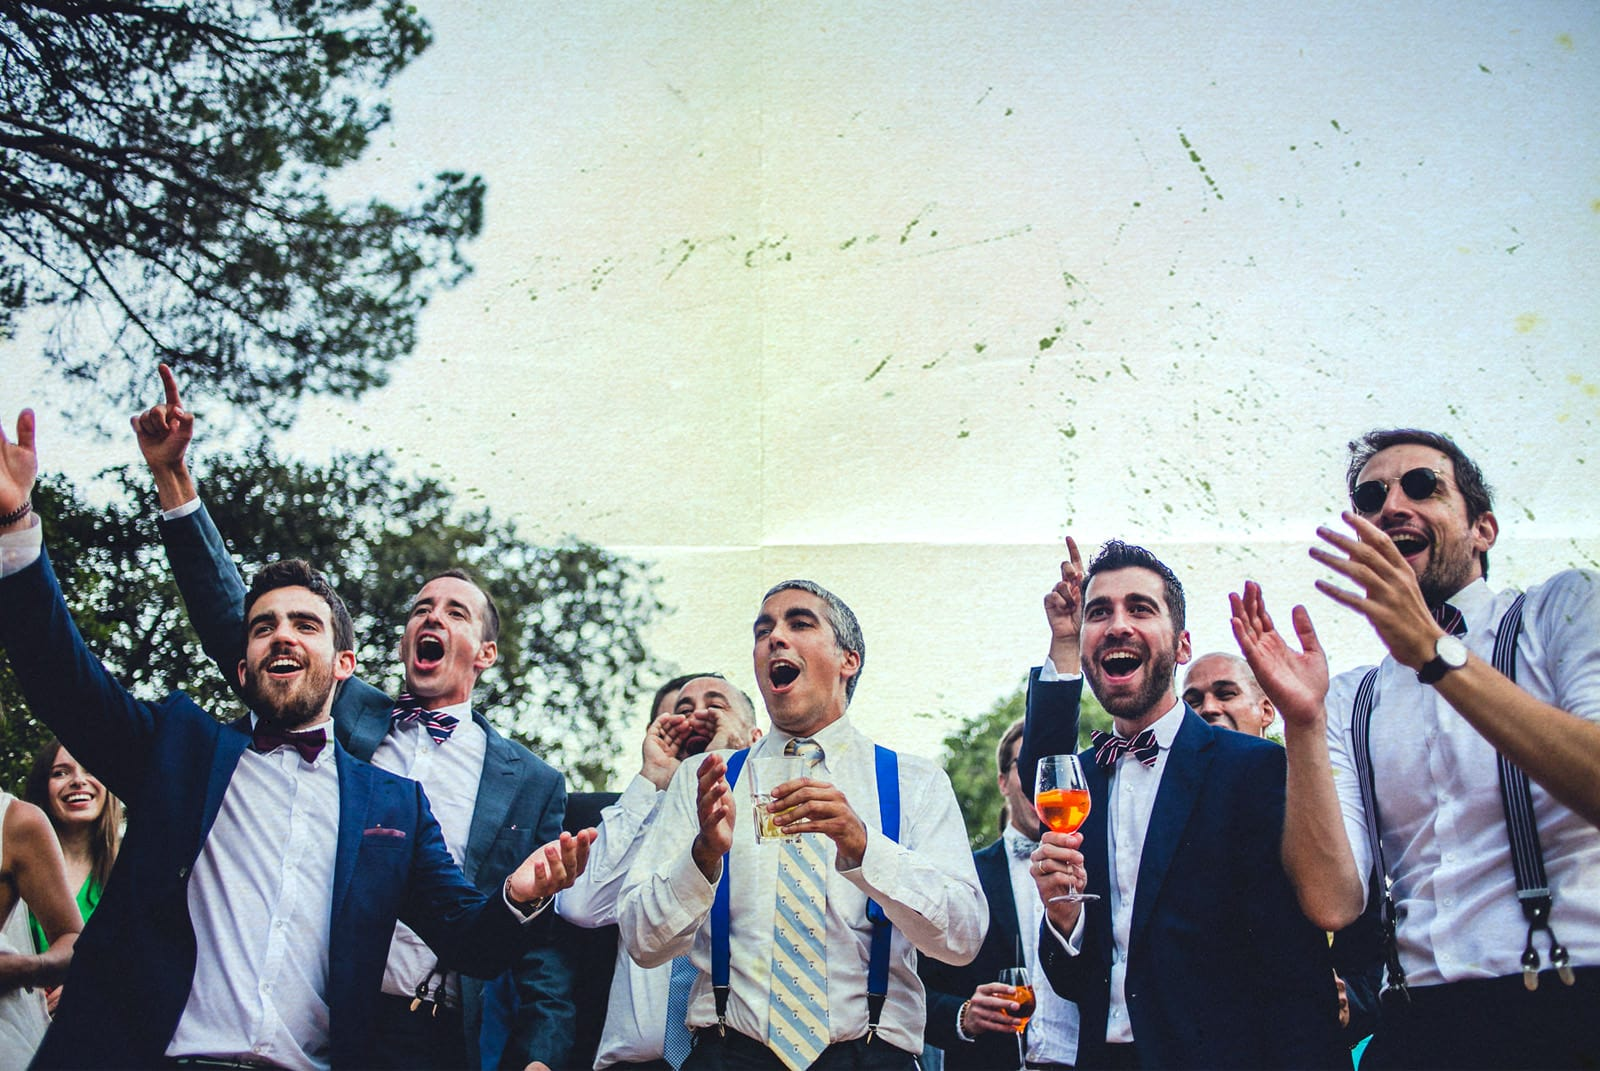 groom jumping and singing with his friends